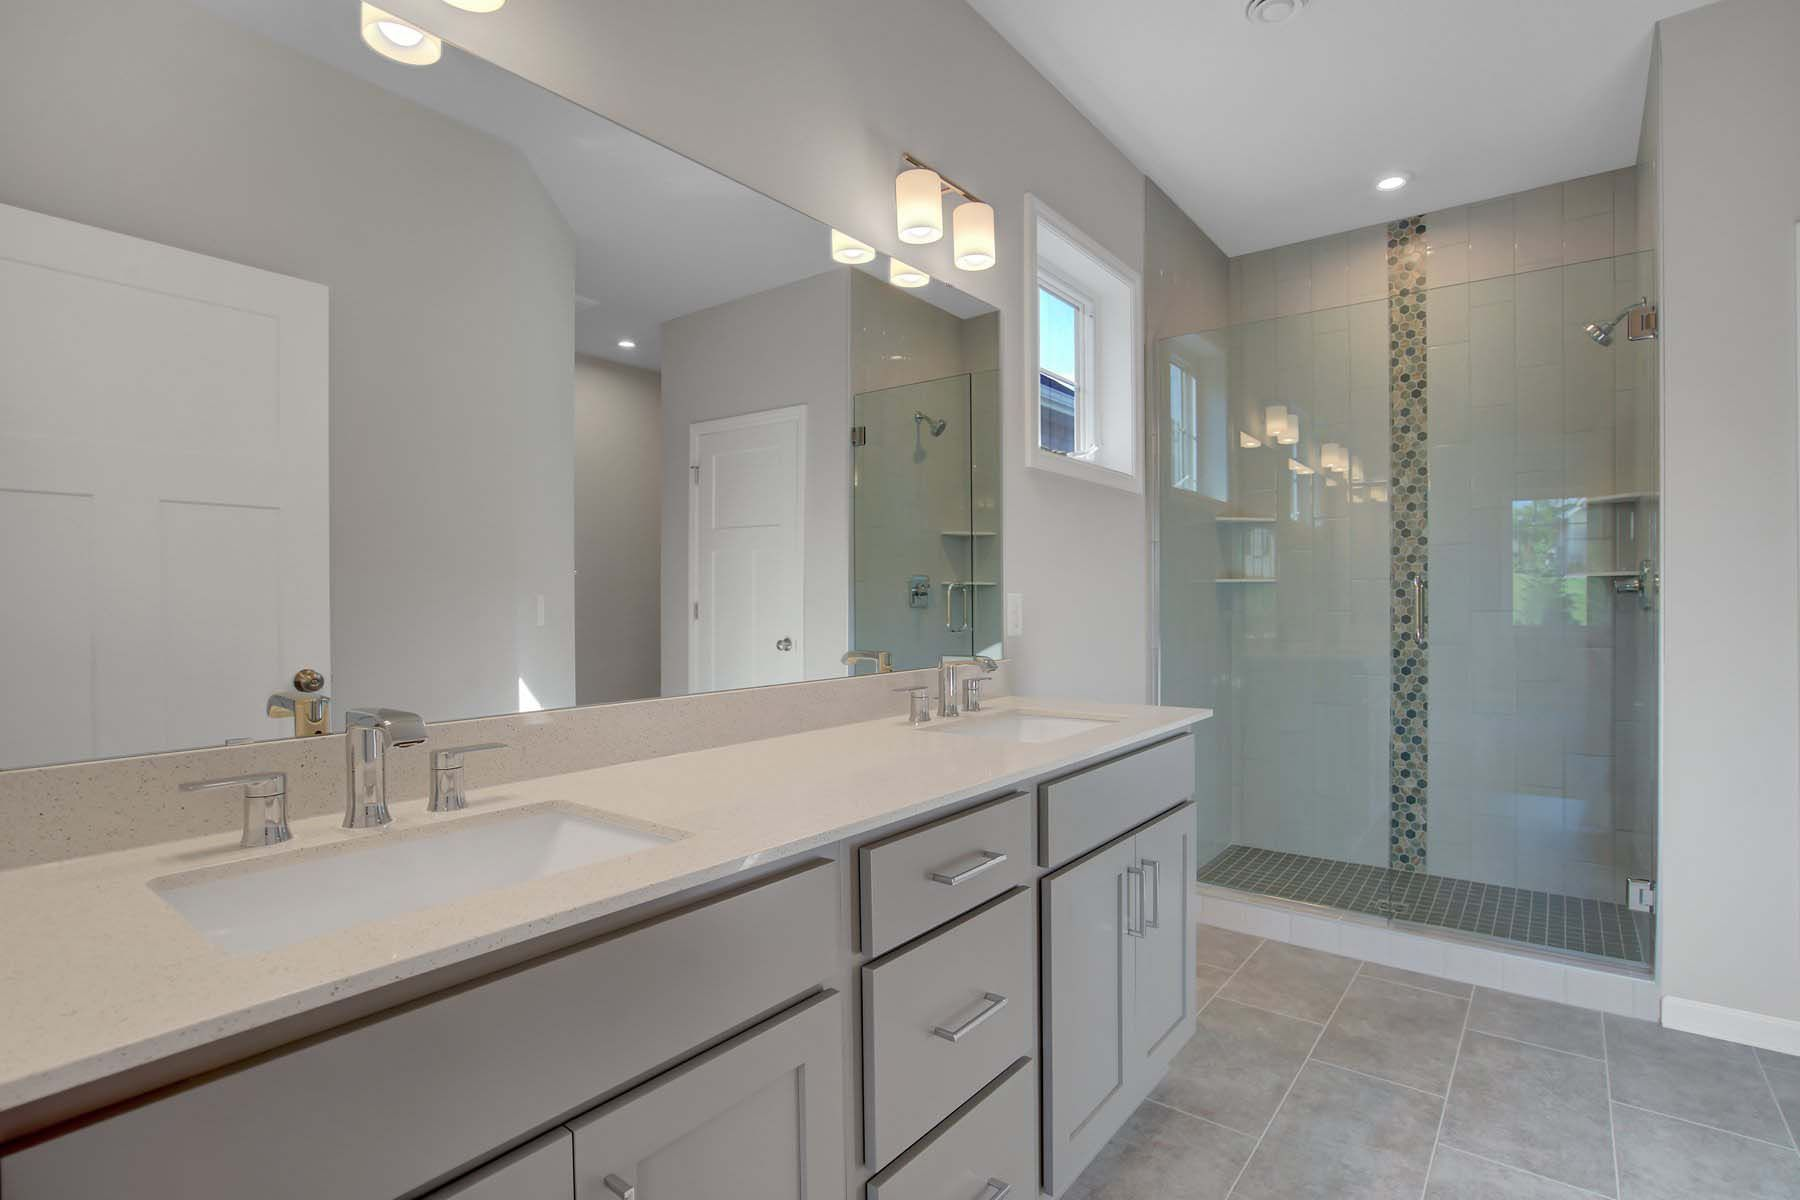 Bathroom featured in the Cedarwood II By M/I Homes in Minneapolis-St. Paul, MN